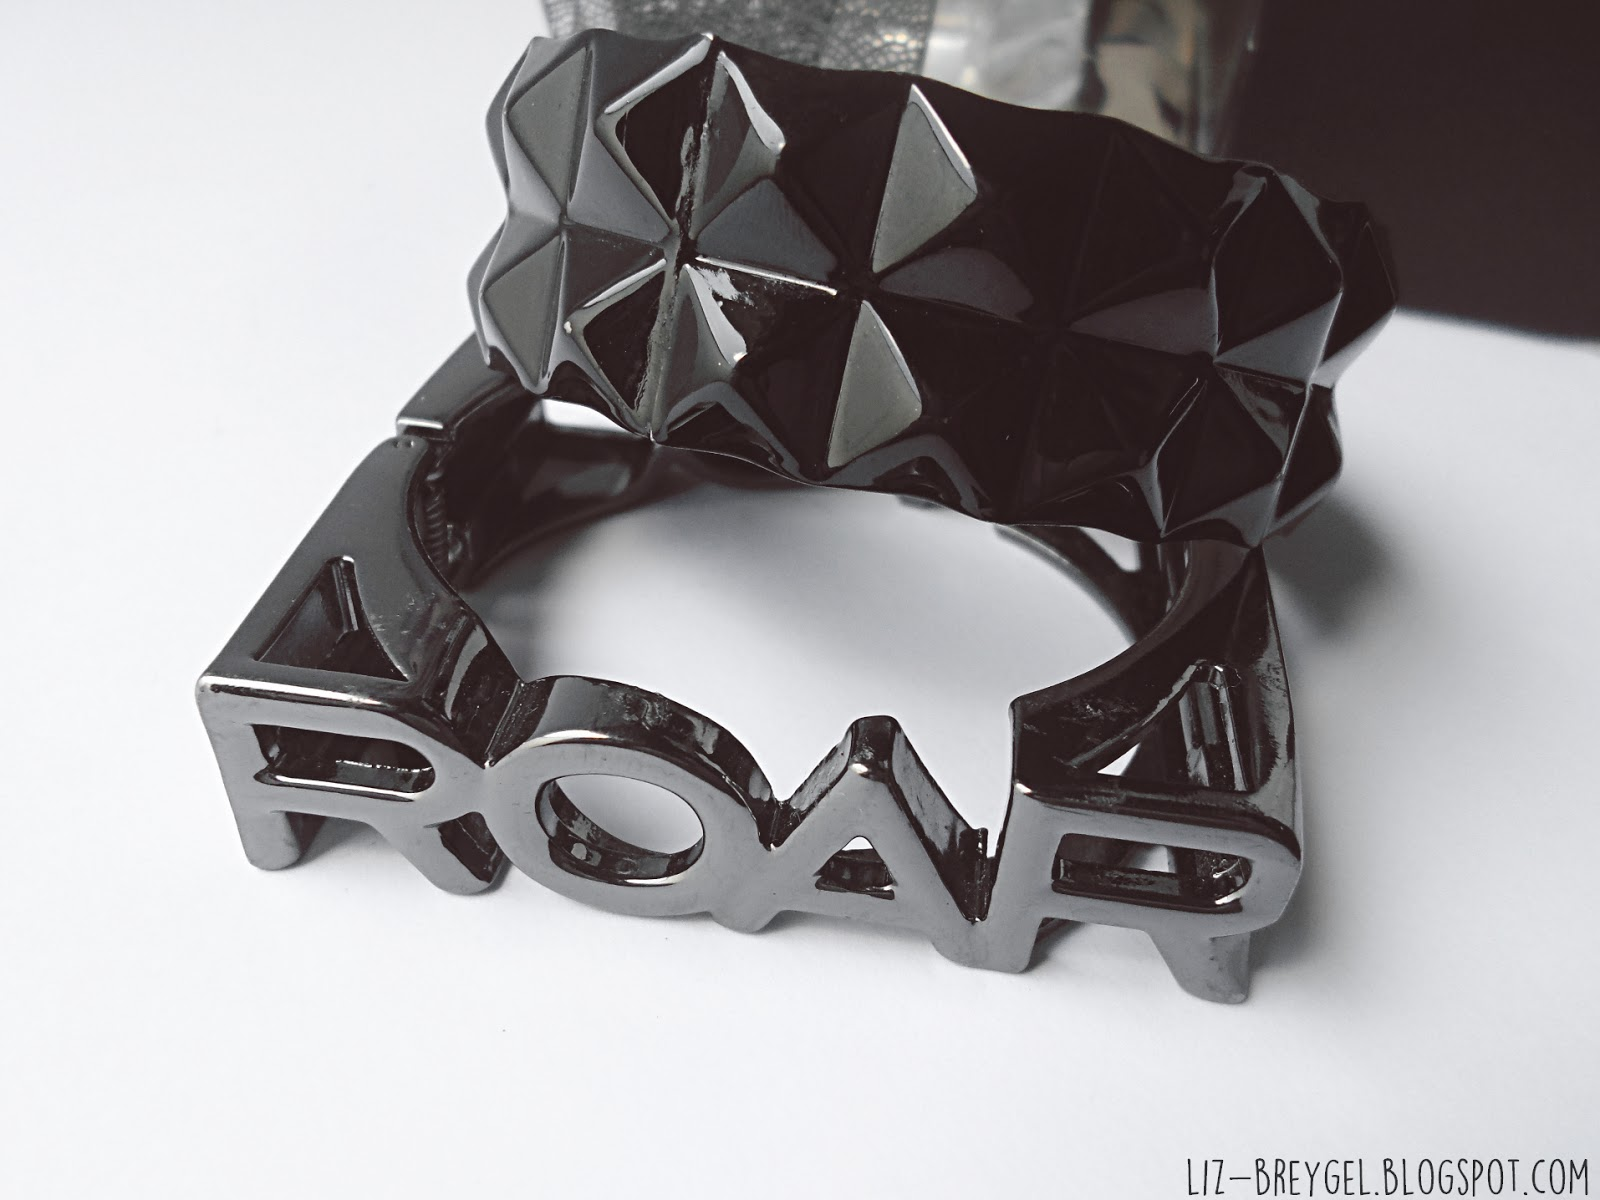 Claire`s Bracelet `ROAR` by Katy Parry Black Pyramid Studded Metal Bracelet liz breygel blogger favorites jewelry fashion haul review